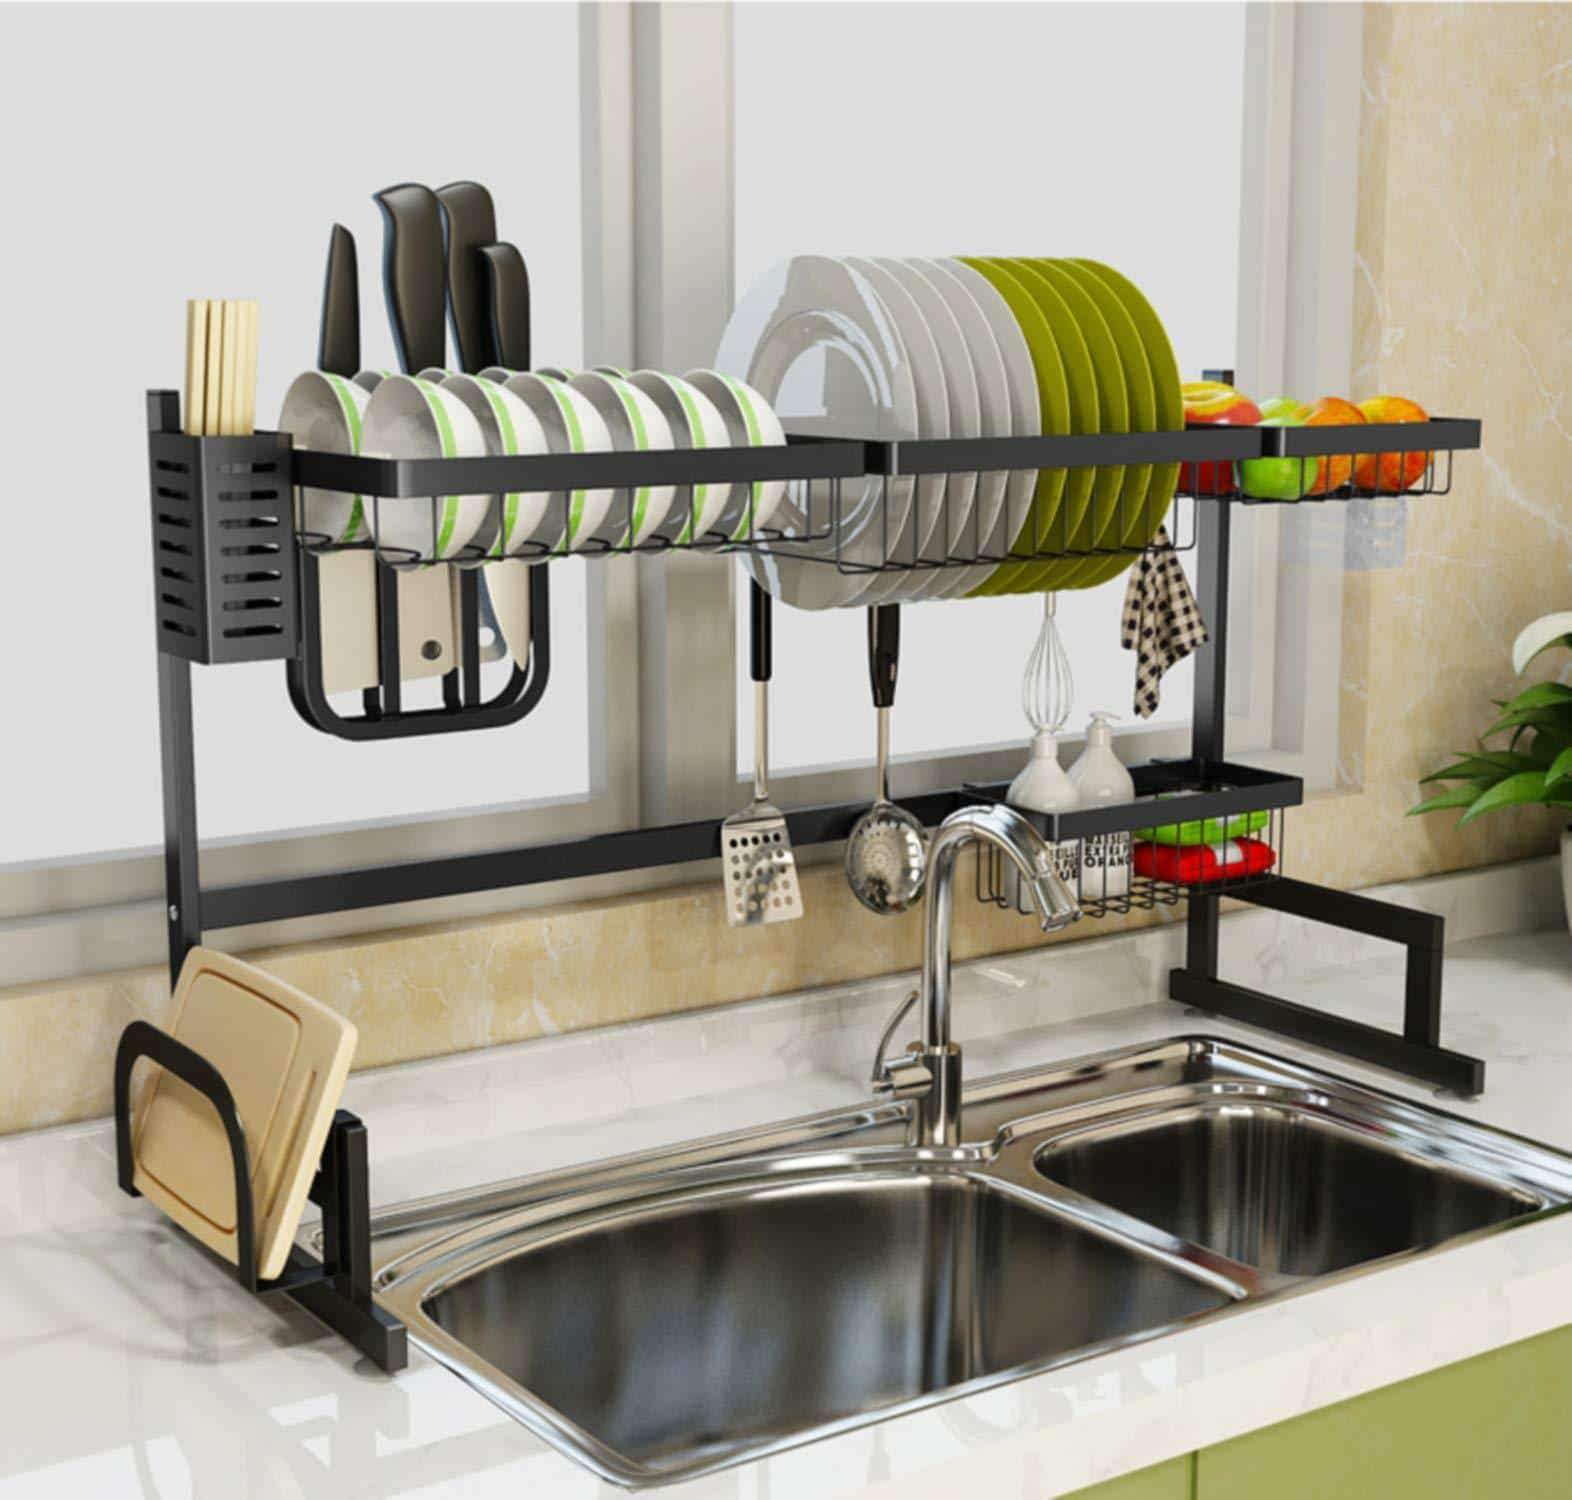 Budget friendly dish drying rack over sink kitchen drainer counter organization supplies shelf stainless steel display utensil holder space saver sink size 32 1 2 inch black